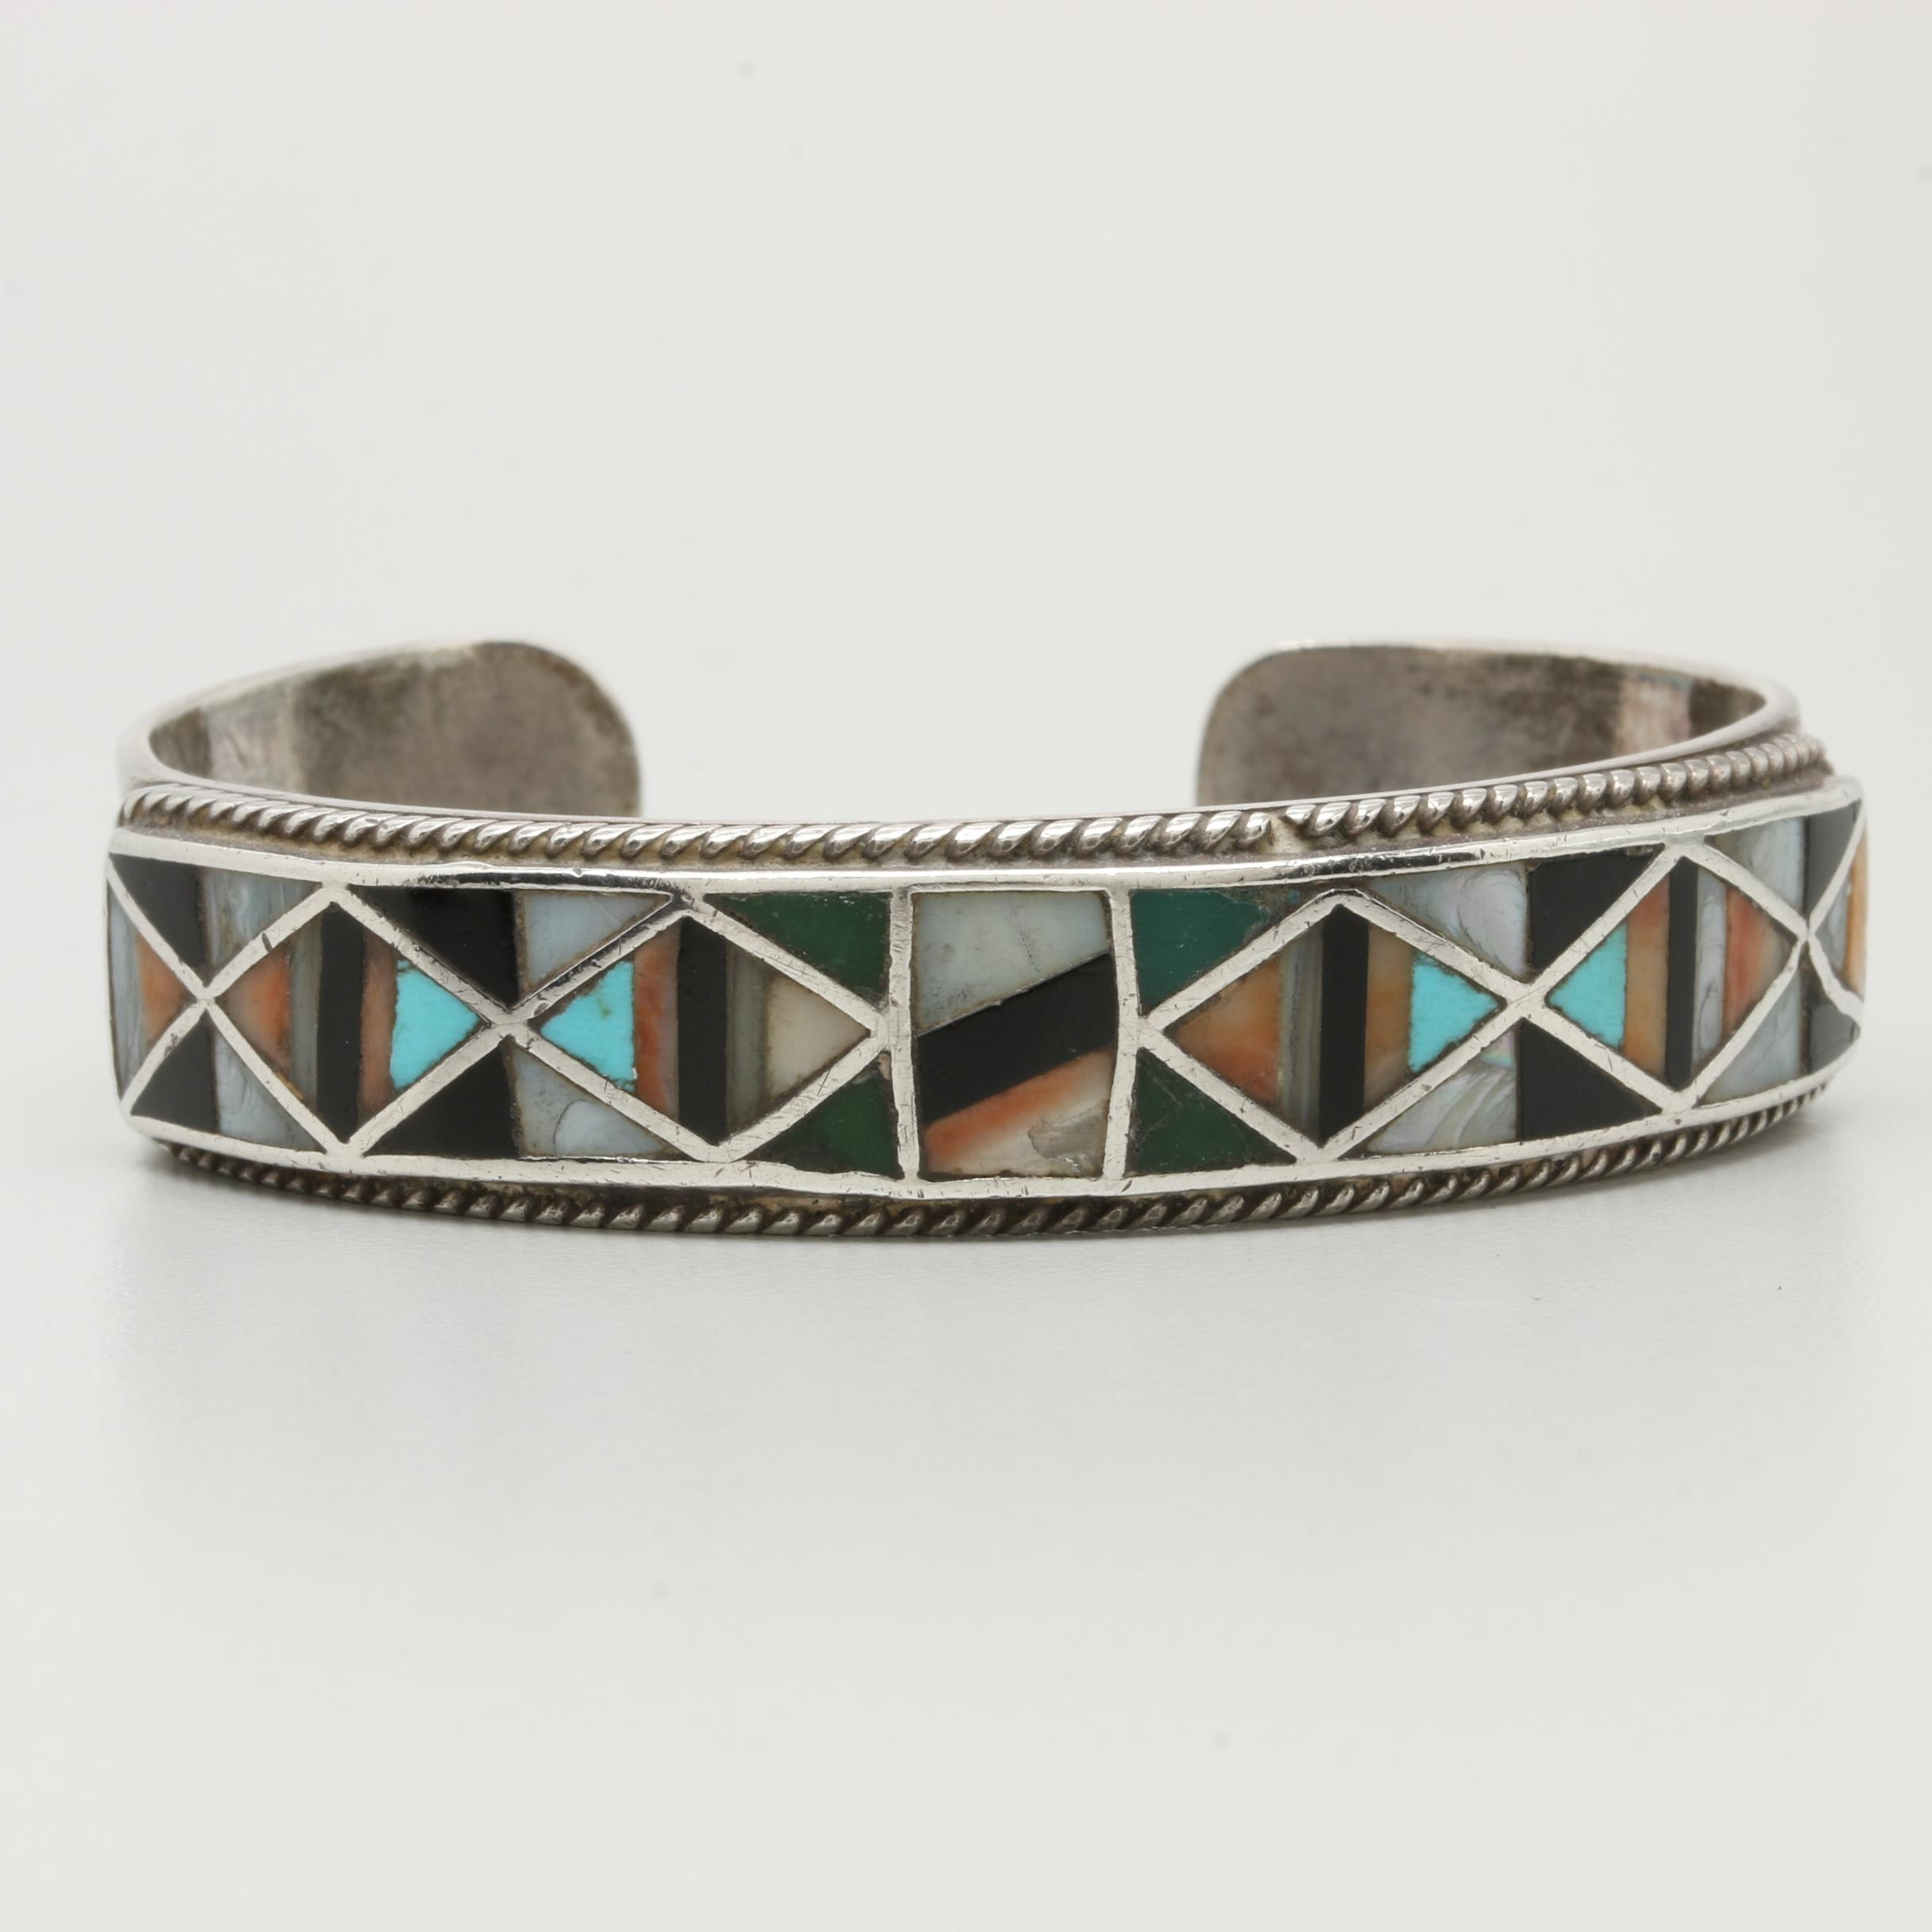 Southwestern Style Sterling Silver Coral and Turquoise Inlay Cuff Bracelet